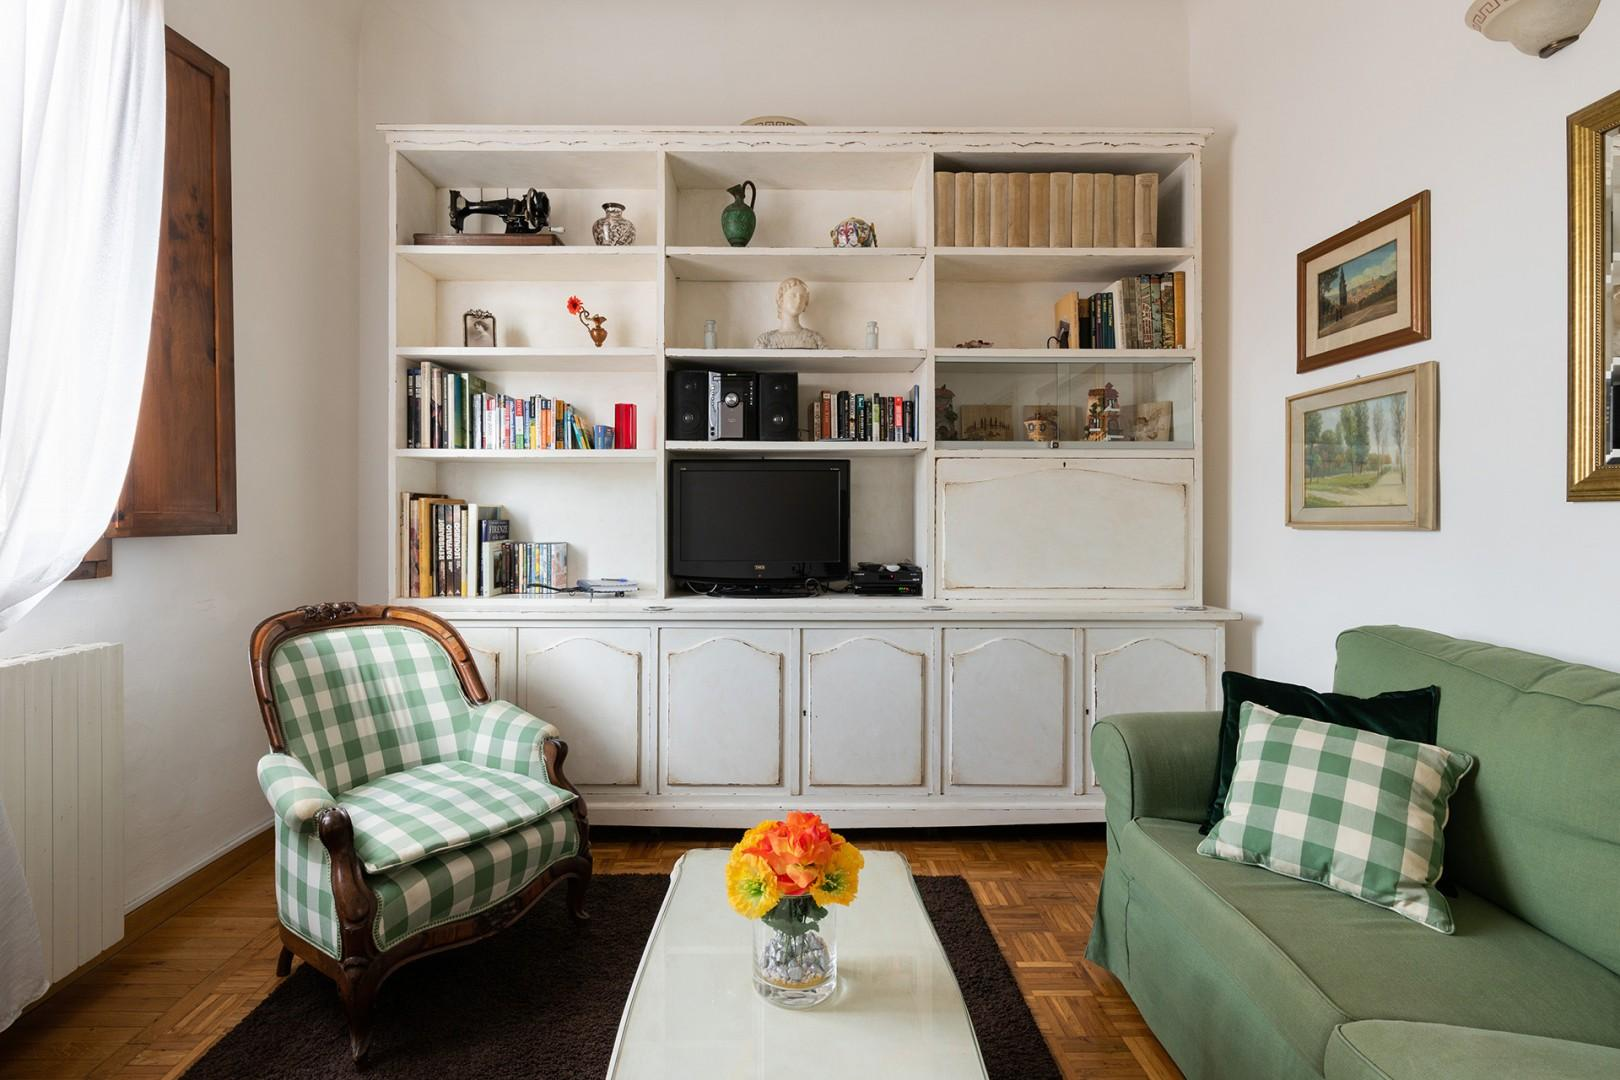 Comfy sofa, cheerful decor. You will be welcomed with a gift basket filled with treats.